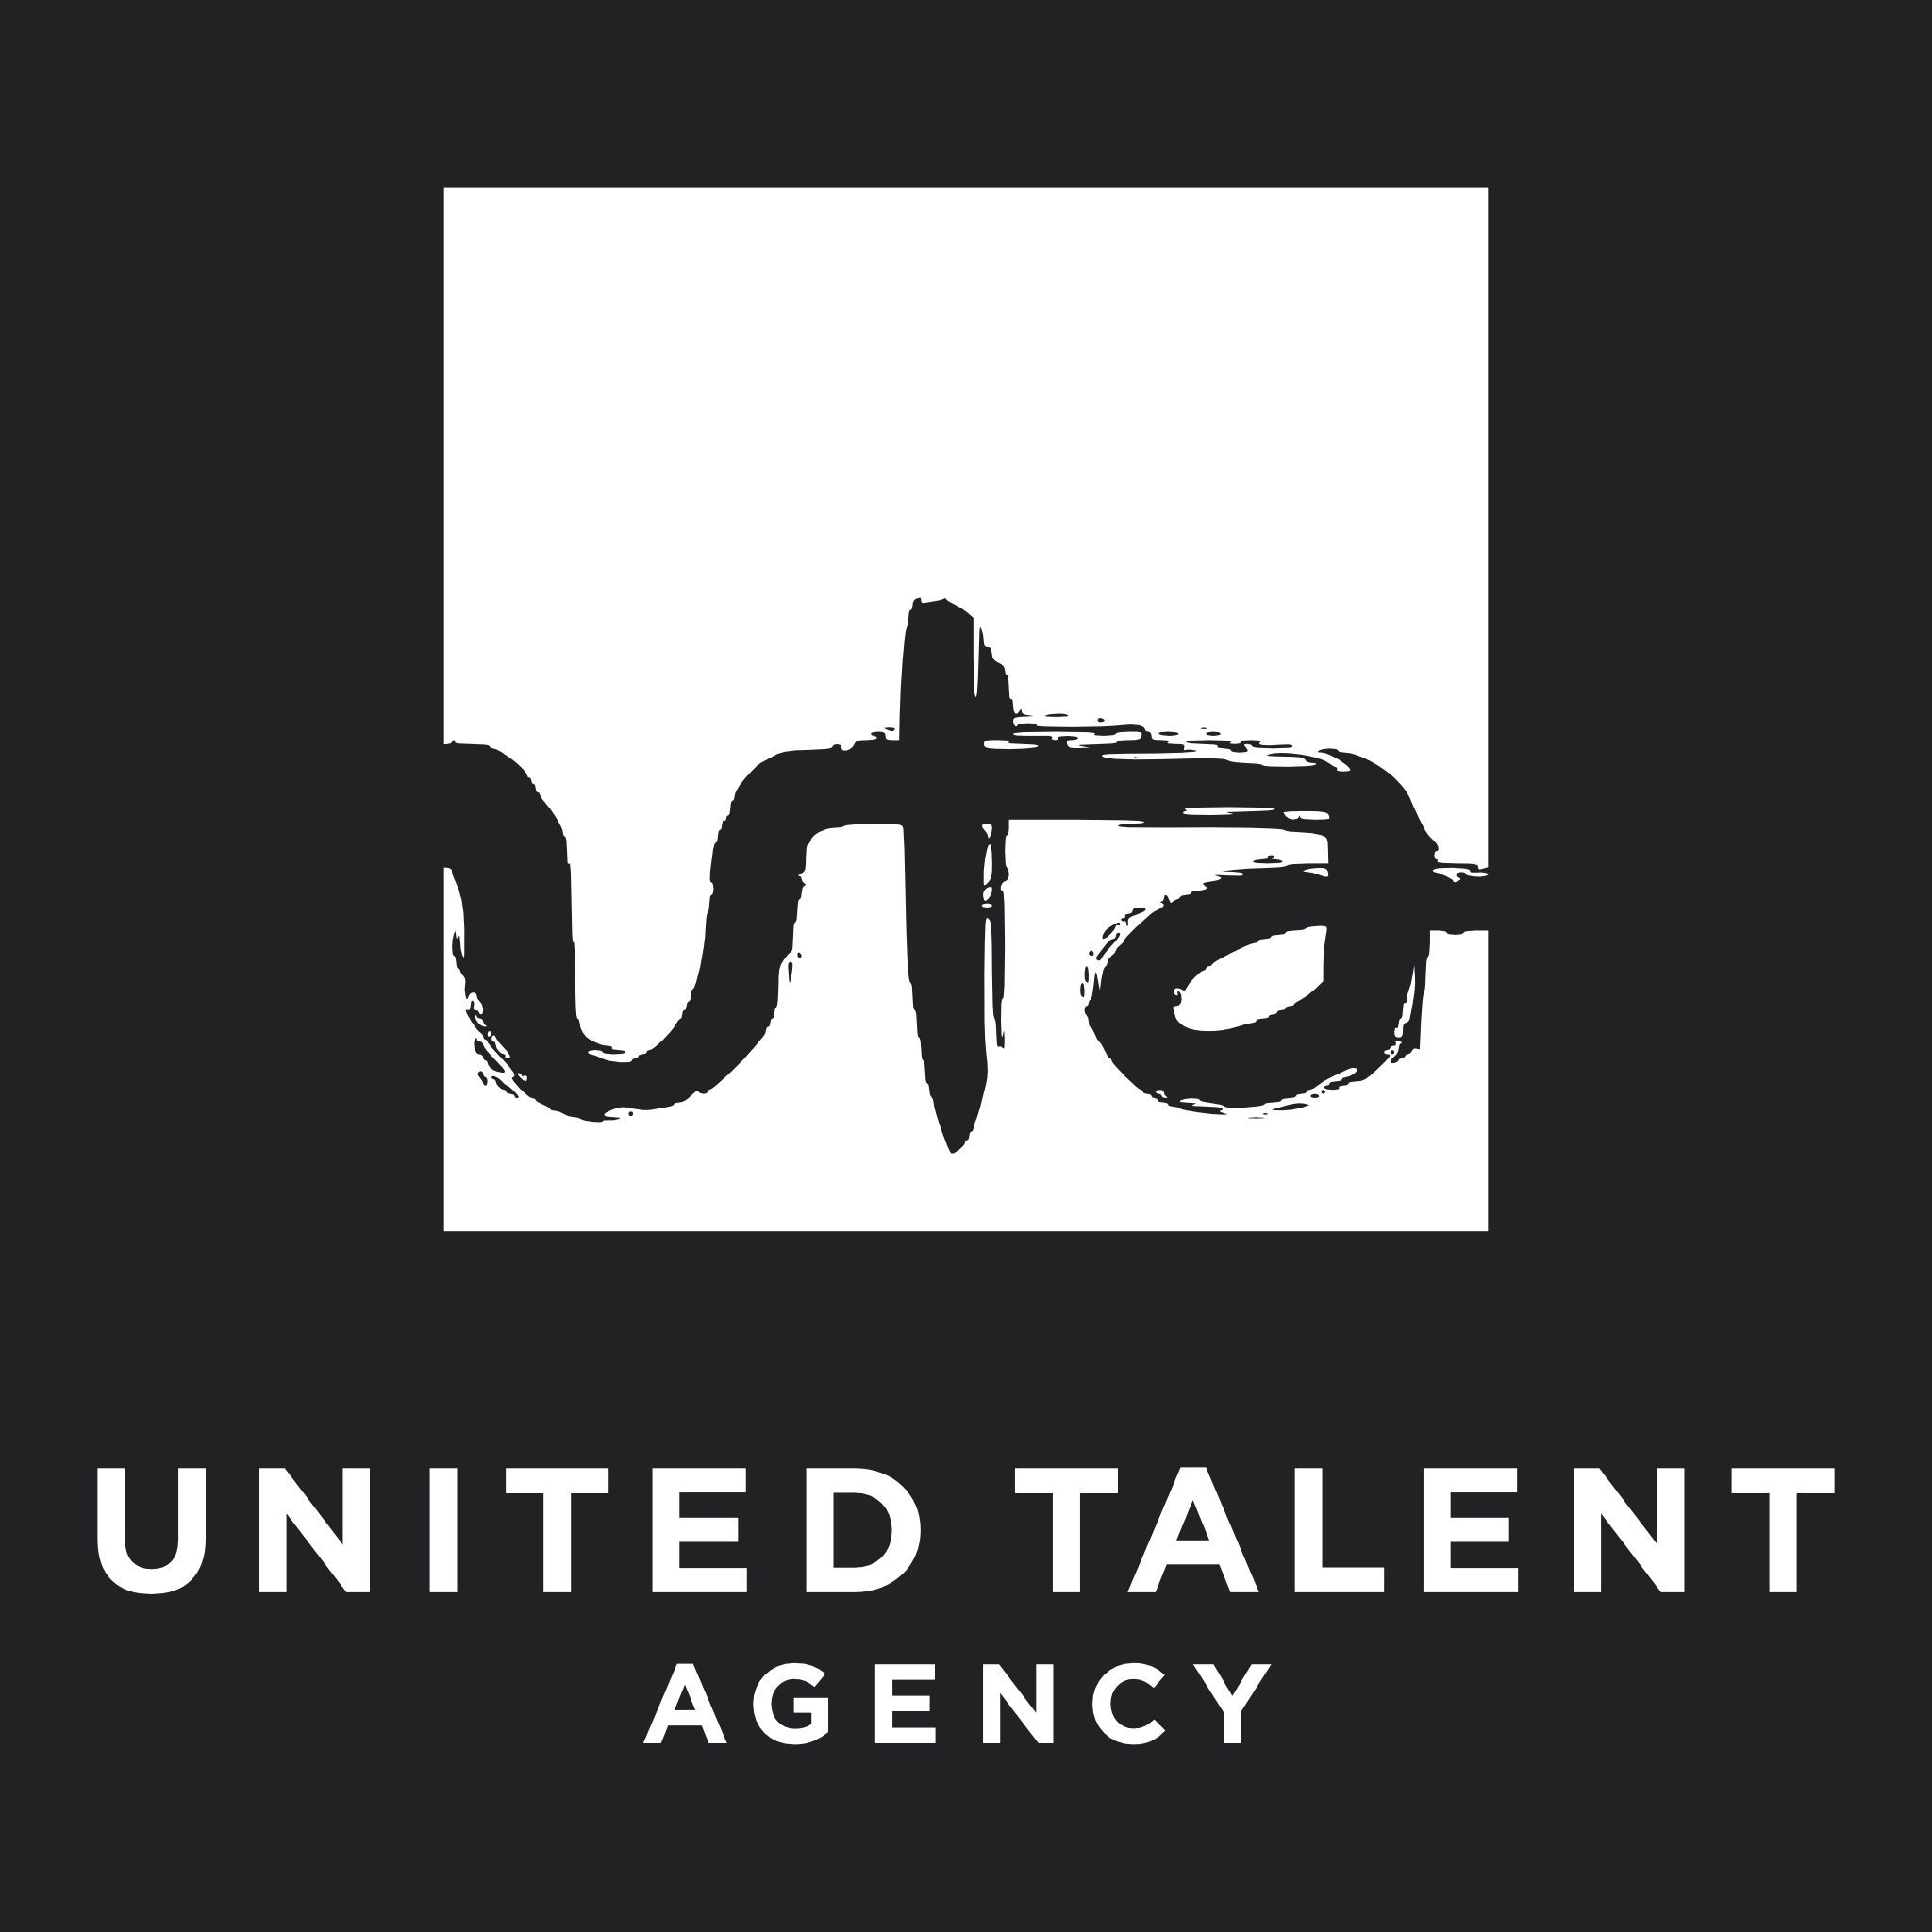 United Talent Agency.jpg